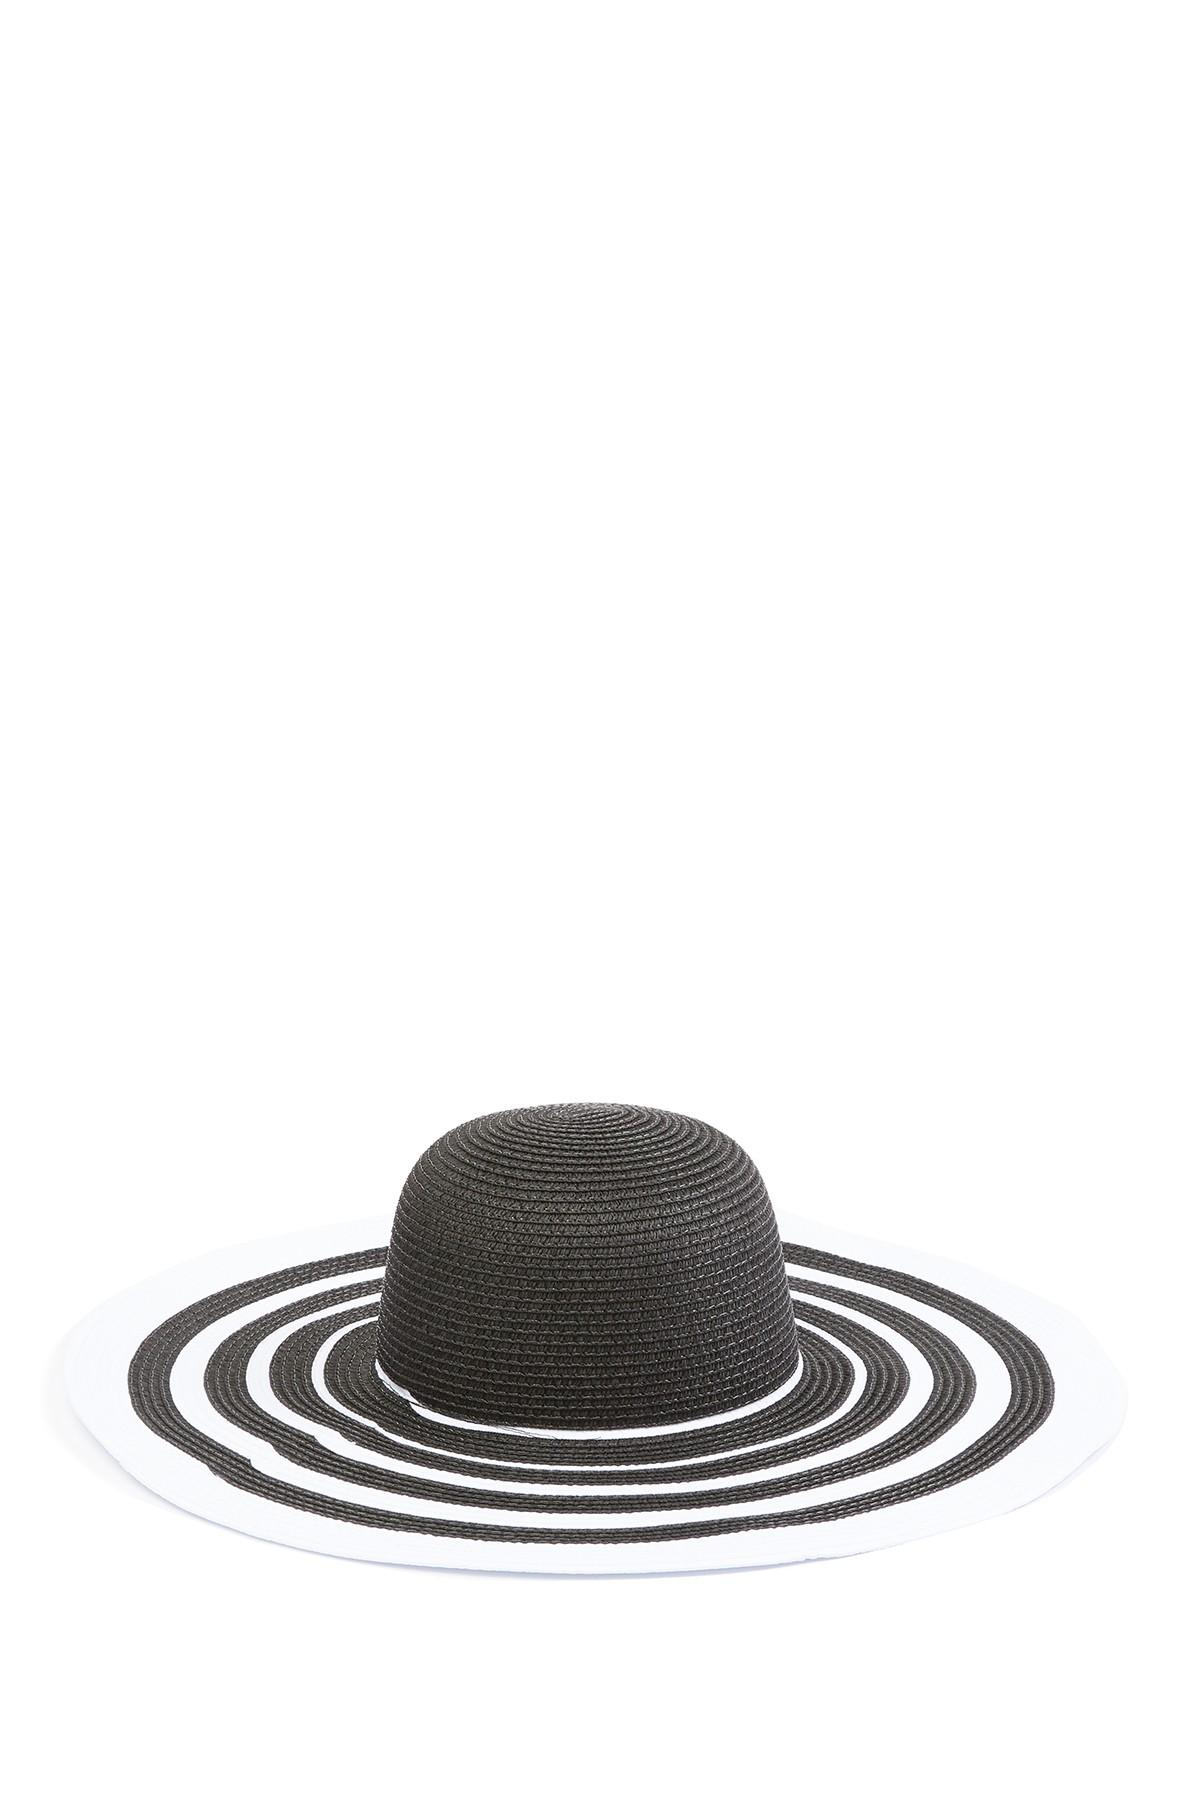 7479326fd Vince Camuto Ribbon Stripe Floppy Hat in Black - Save 59% - Lyst